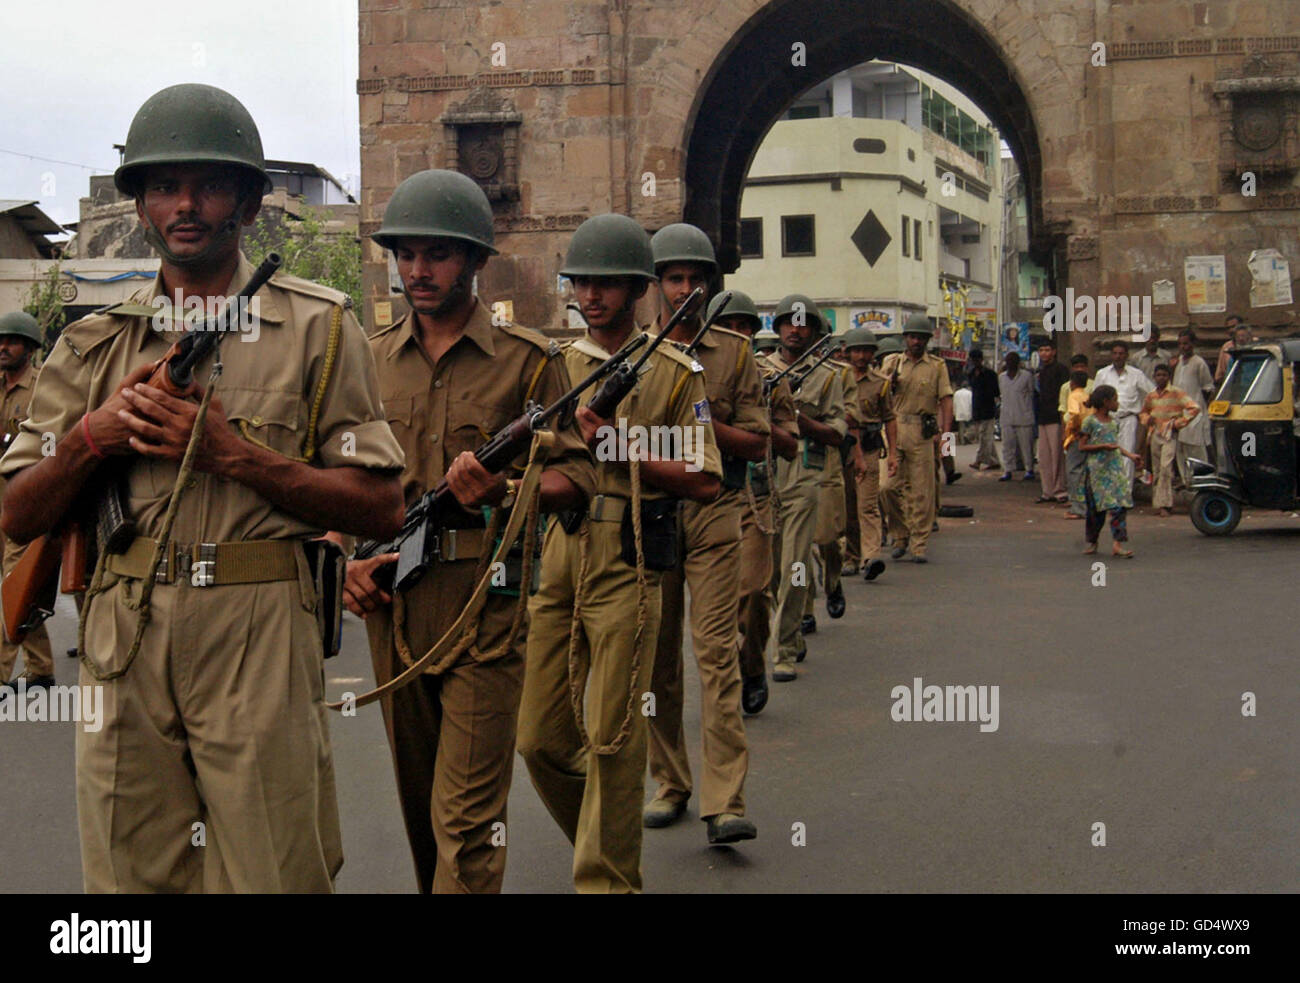 Police Force march - Stock Image